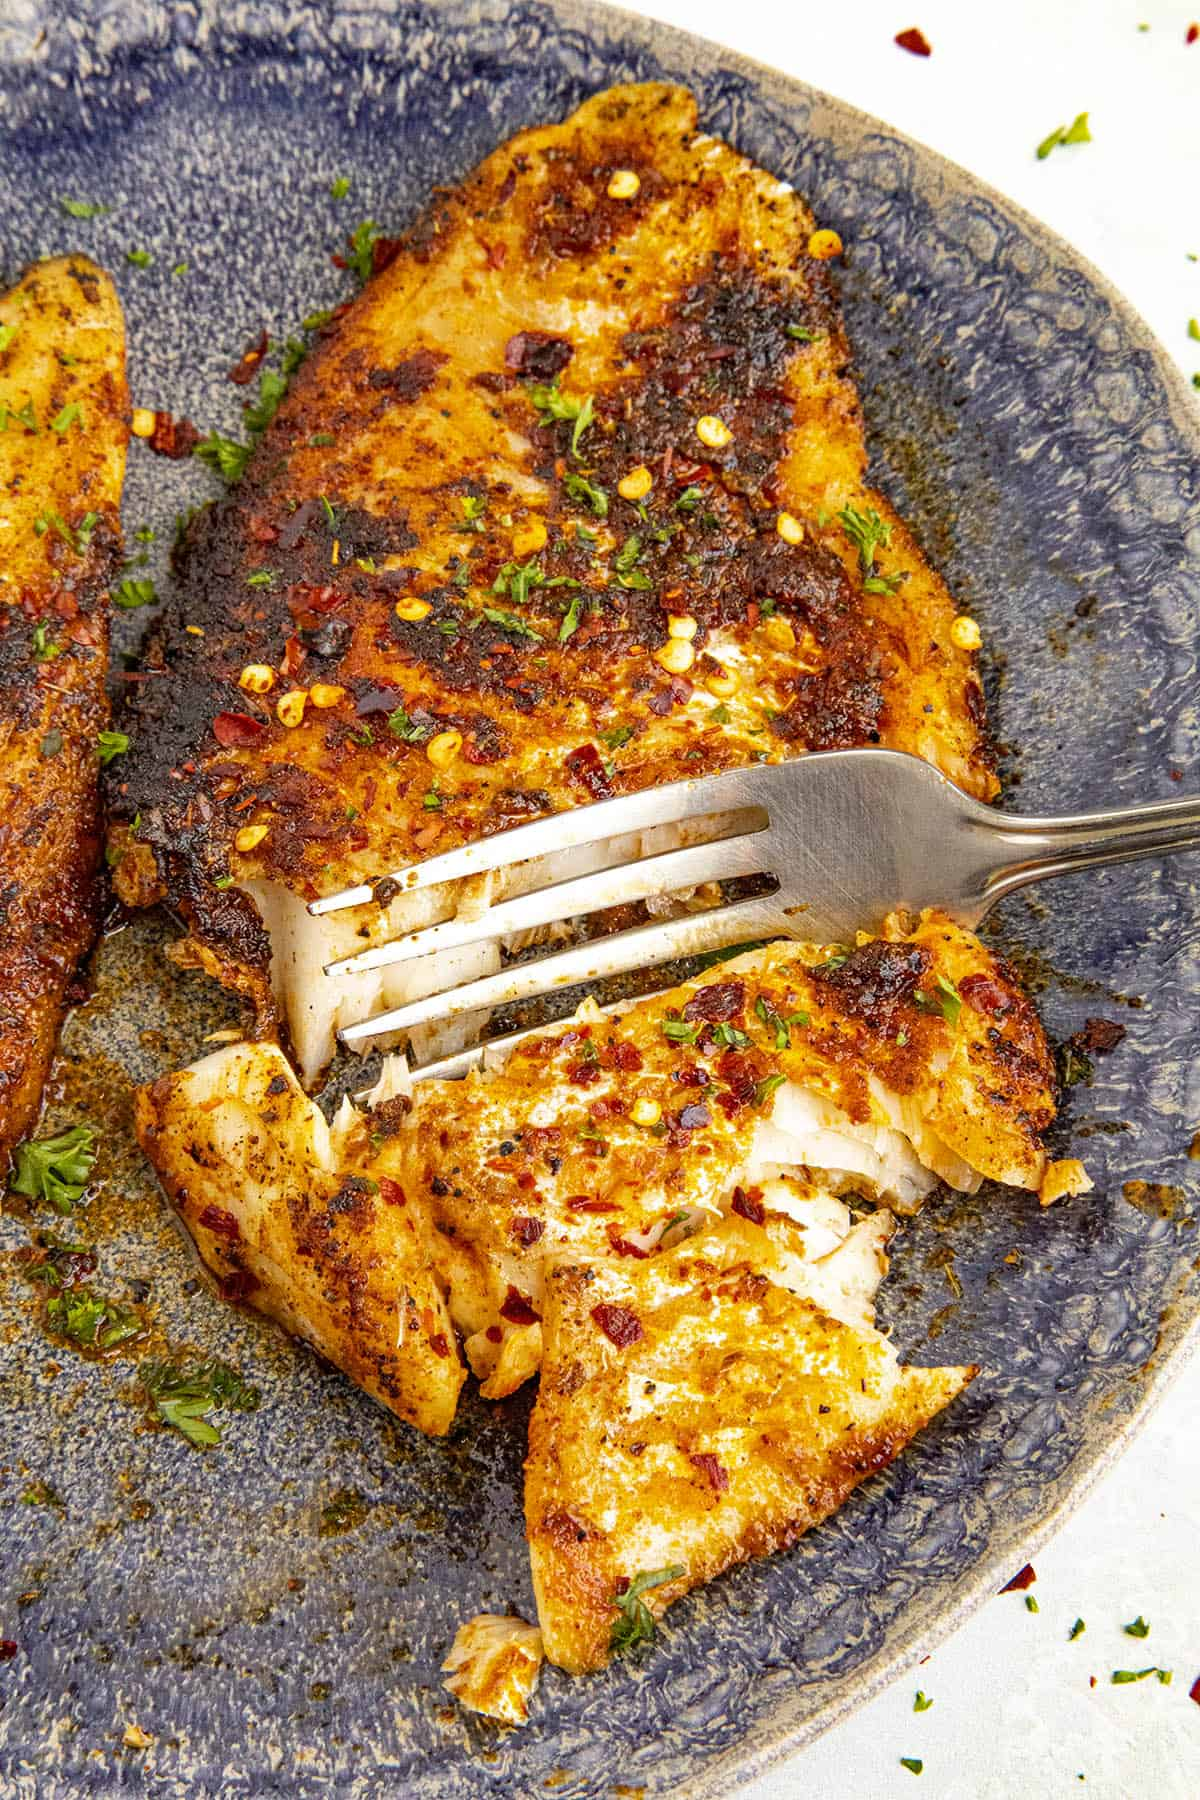 Taking a scoop with a fork of my spicy blackened fish